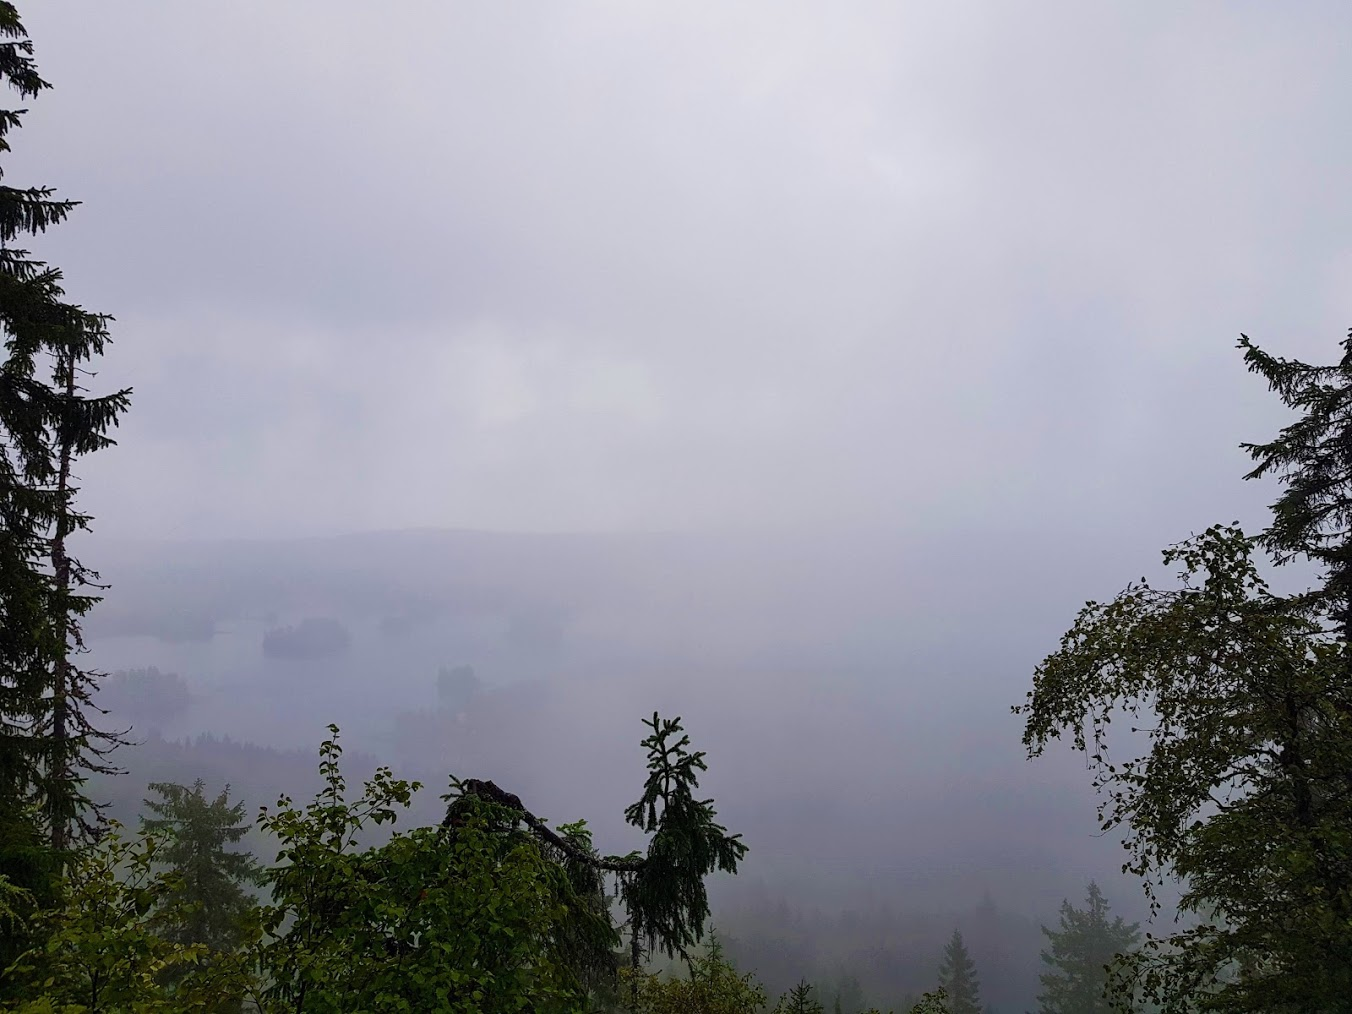 A foggy scenery from the hilltop towards a lake.